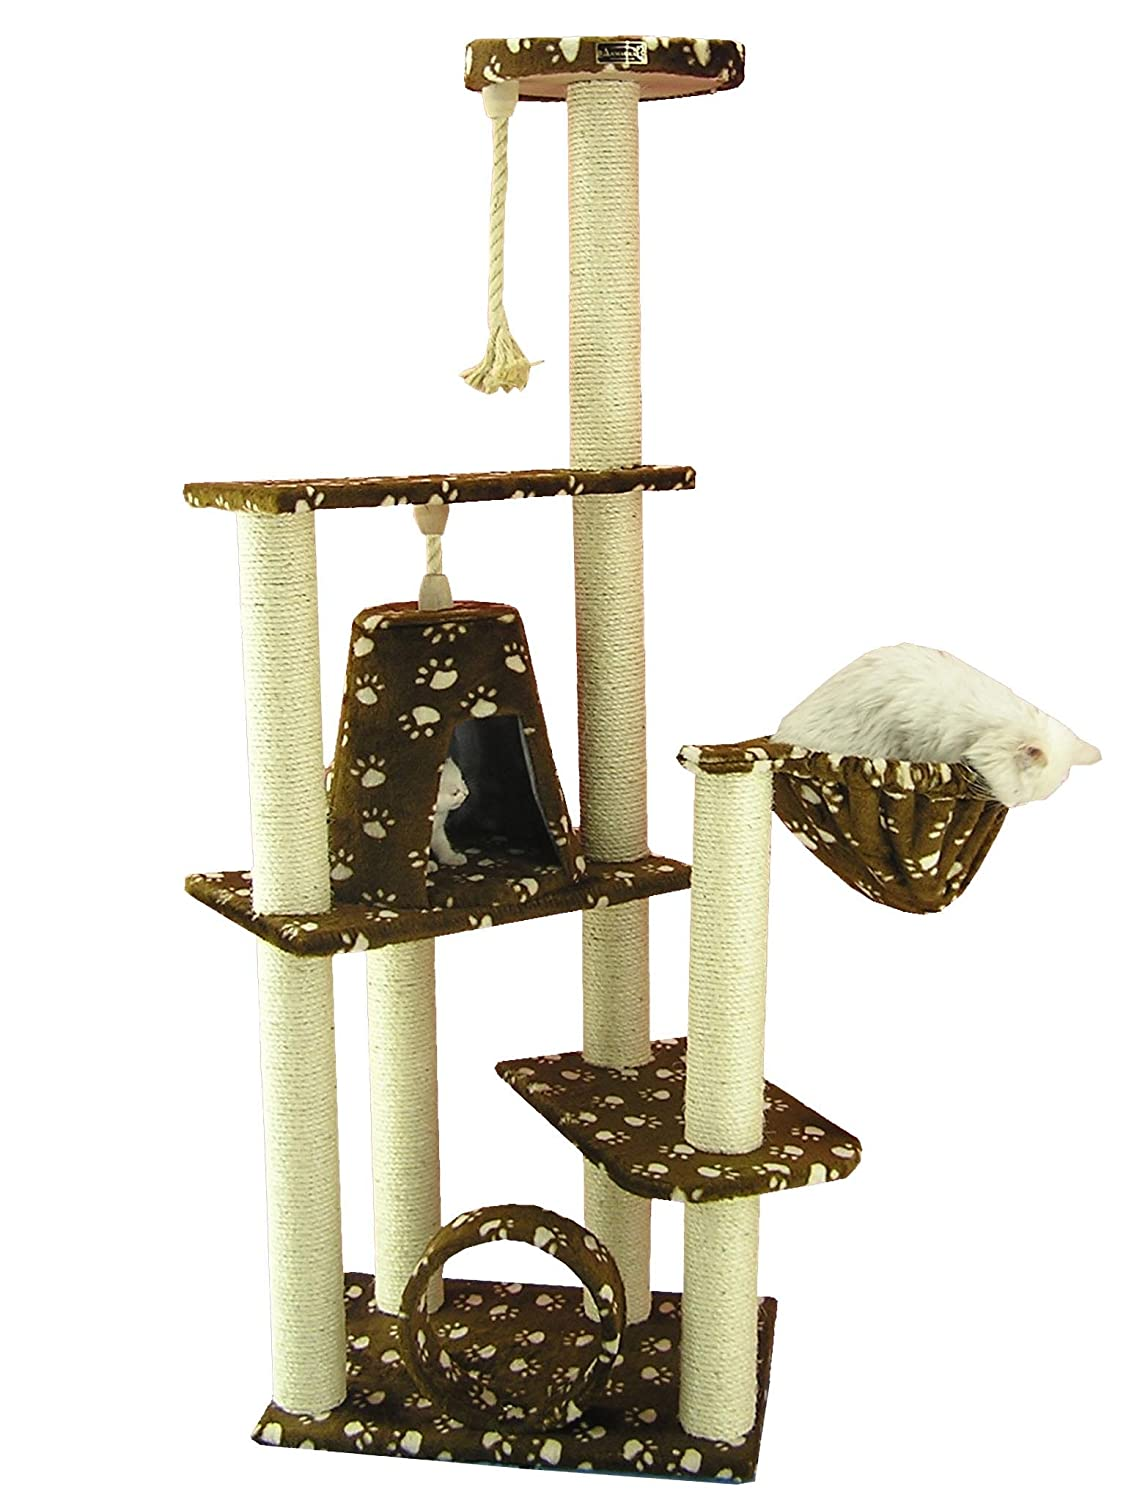 Amazon.com : Armarkat Cat Tree Model A6601, Saddle Brwon W/White Paw Print  : Multi Cat Jungle Gym : Pet Supplies